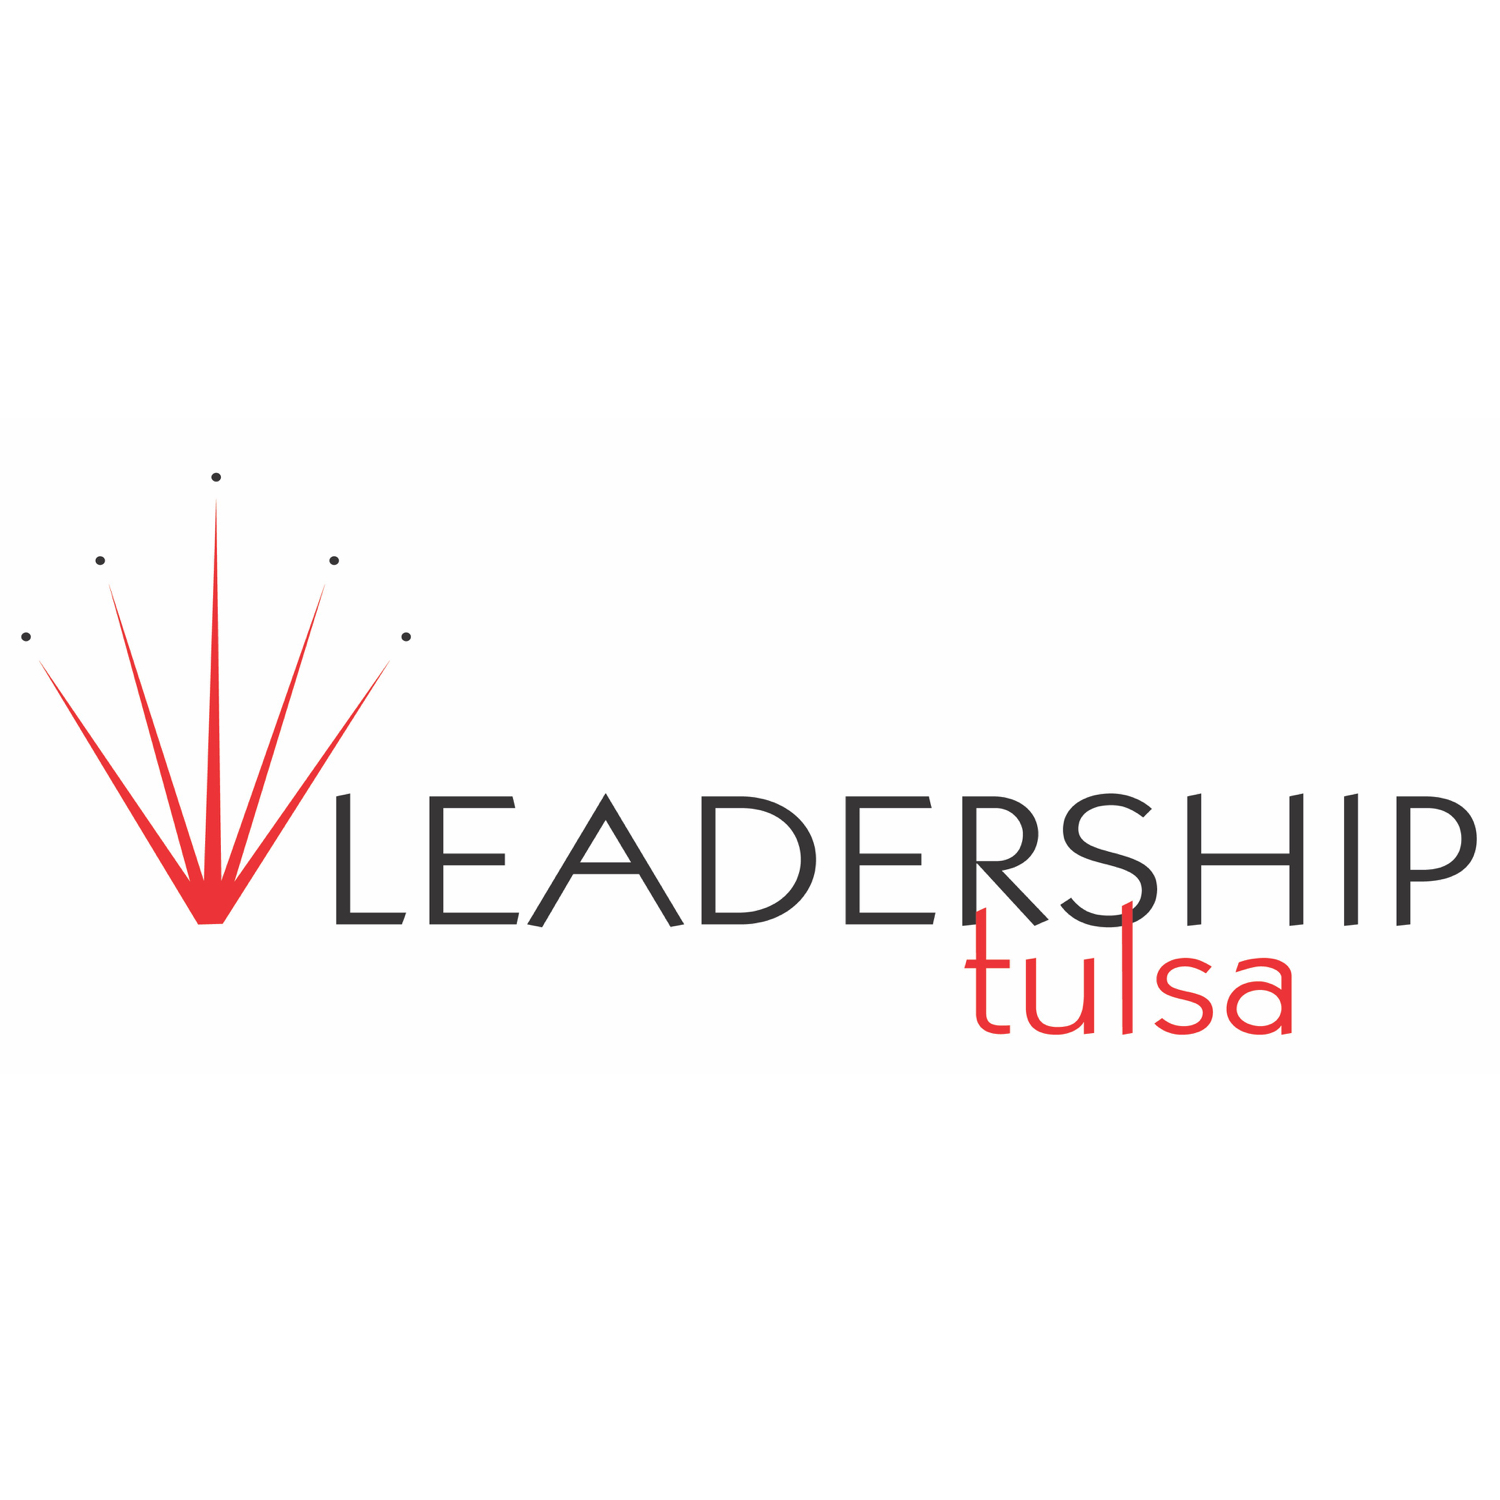 Leadership Tulsa   Leadership Tulsa is a non-profit with the mission to identify, develop and connect diverse leaders who impact the community through service.